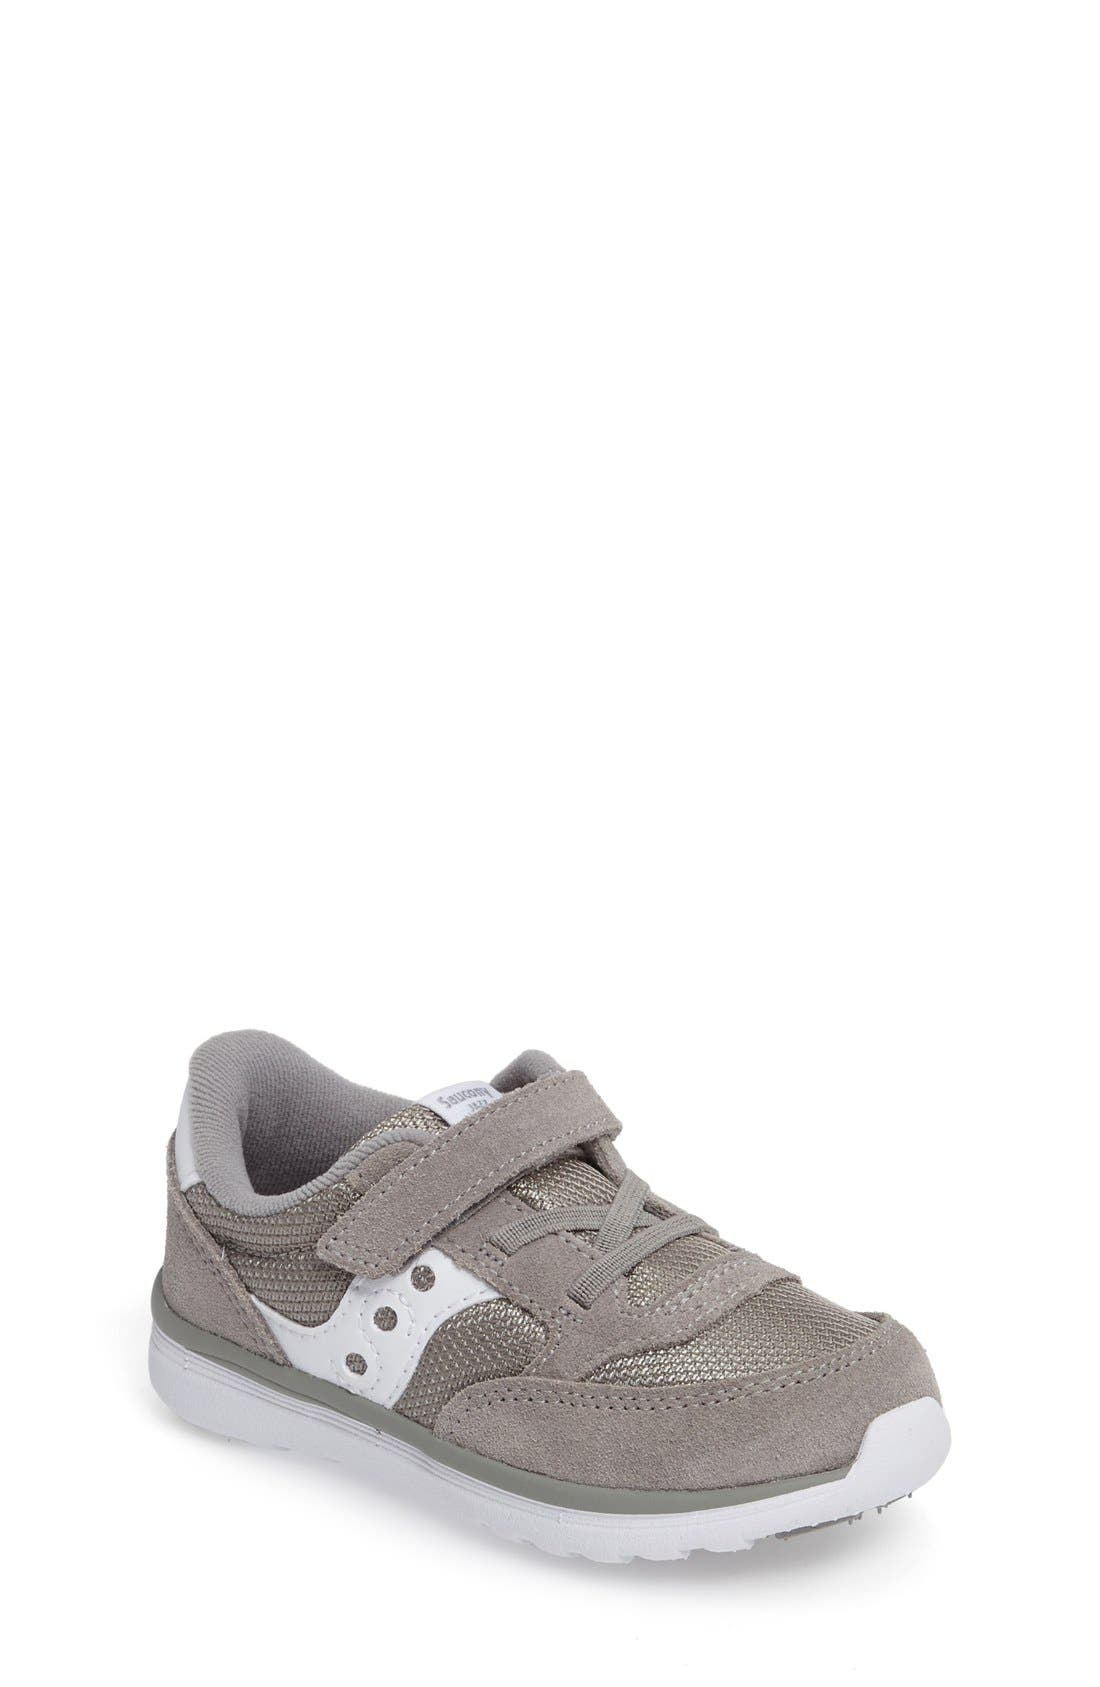 Jazz Lite Sneaker,                         Main,                         color, GREY/ WHITE